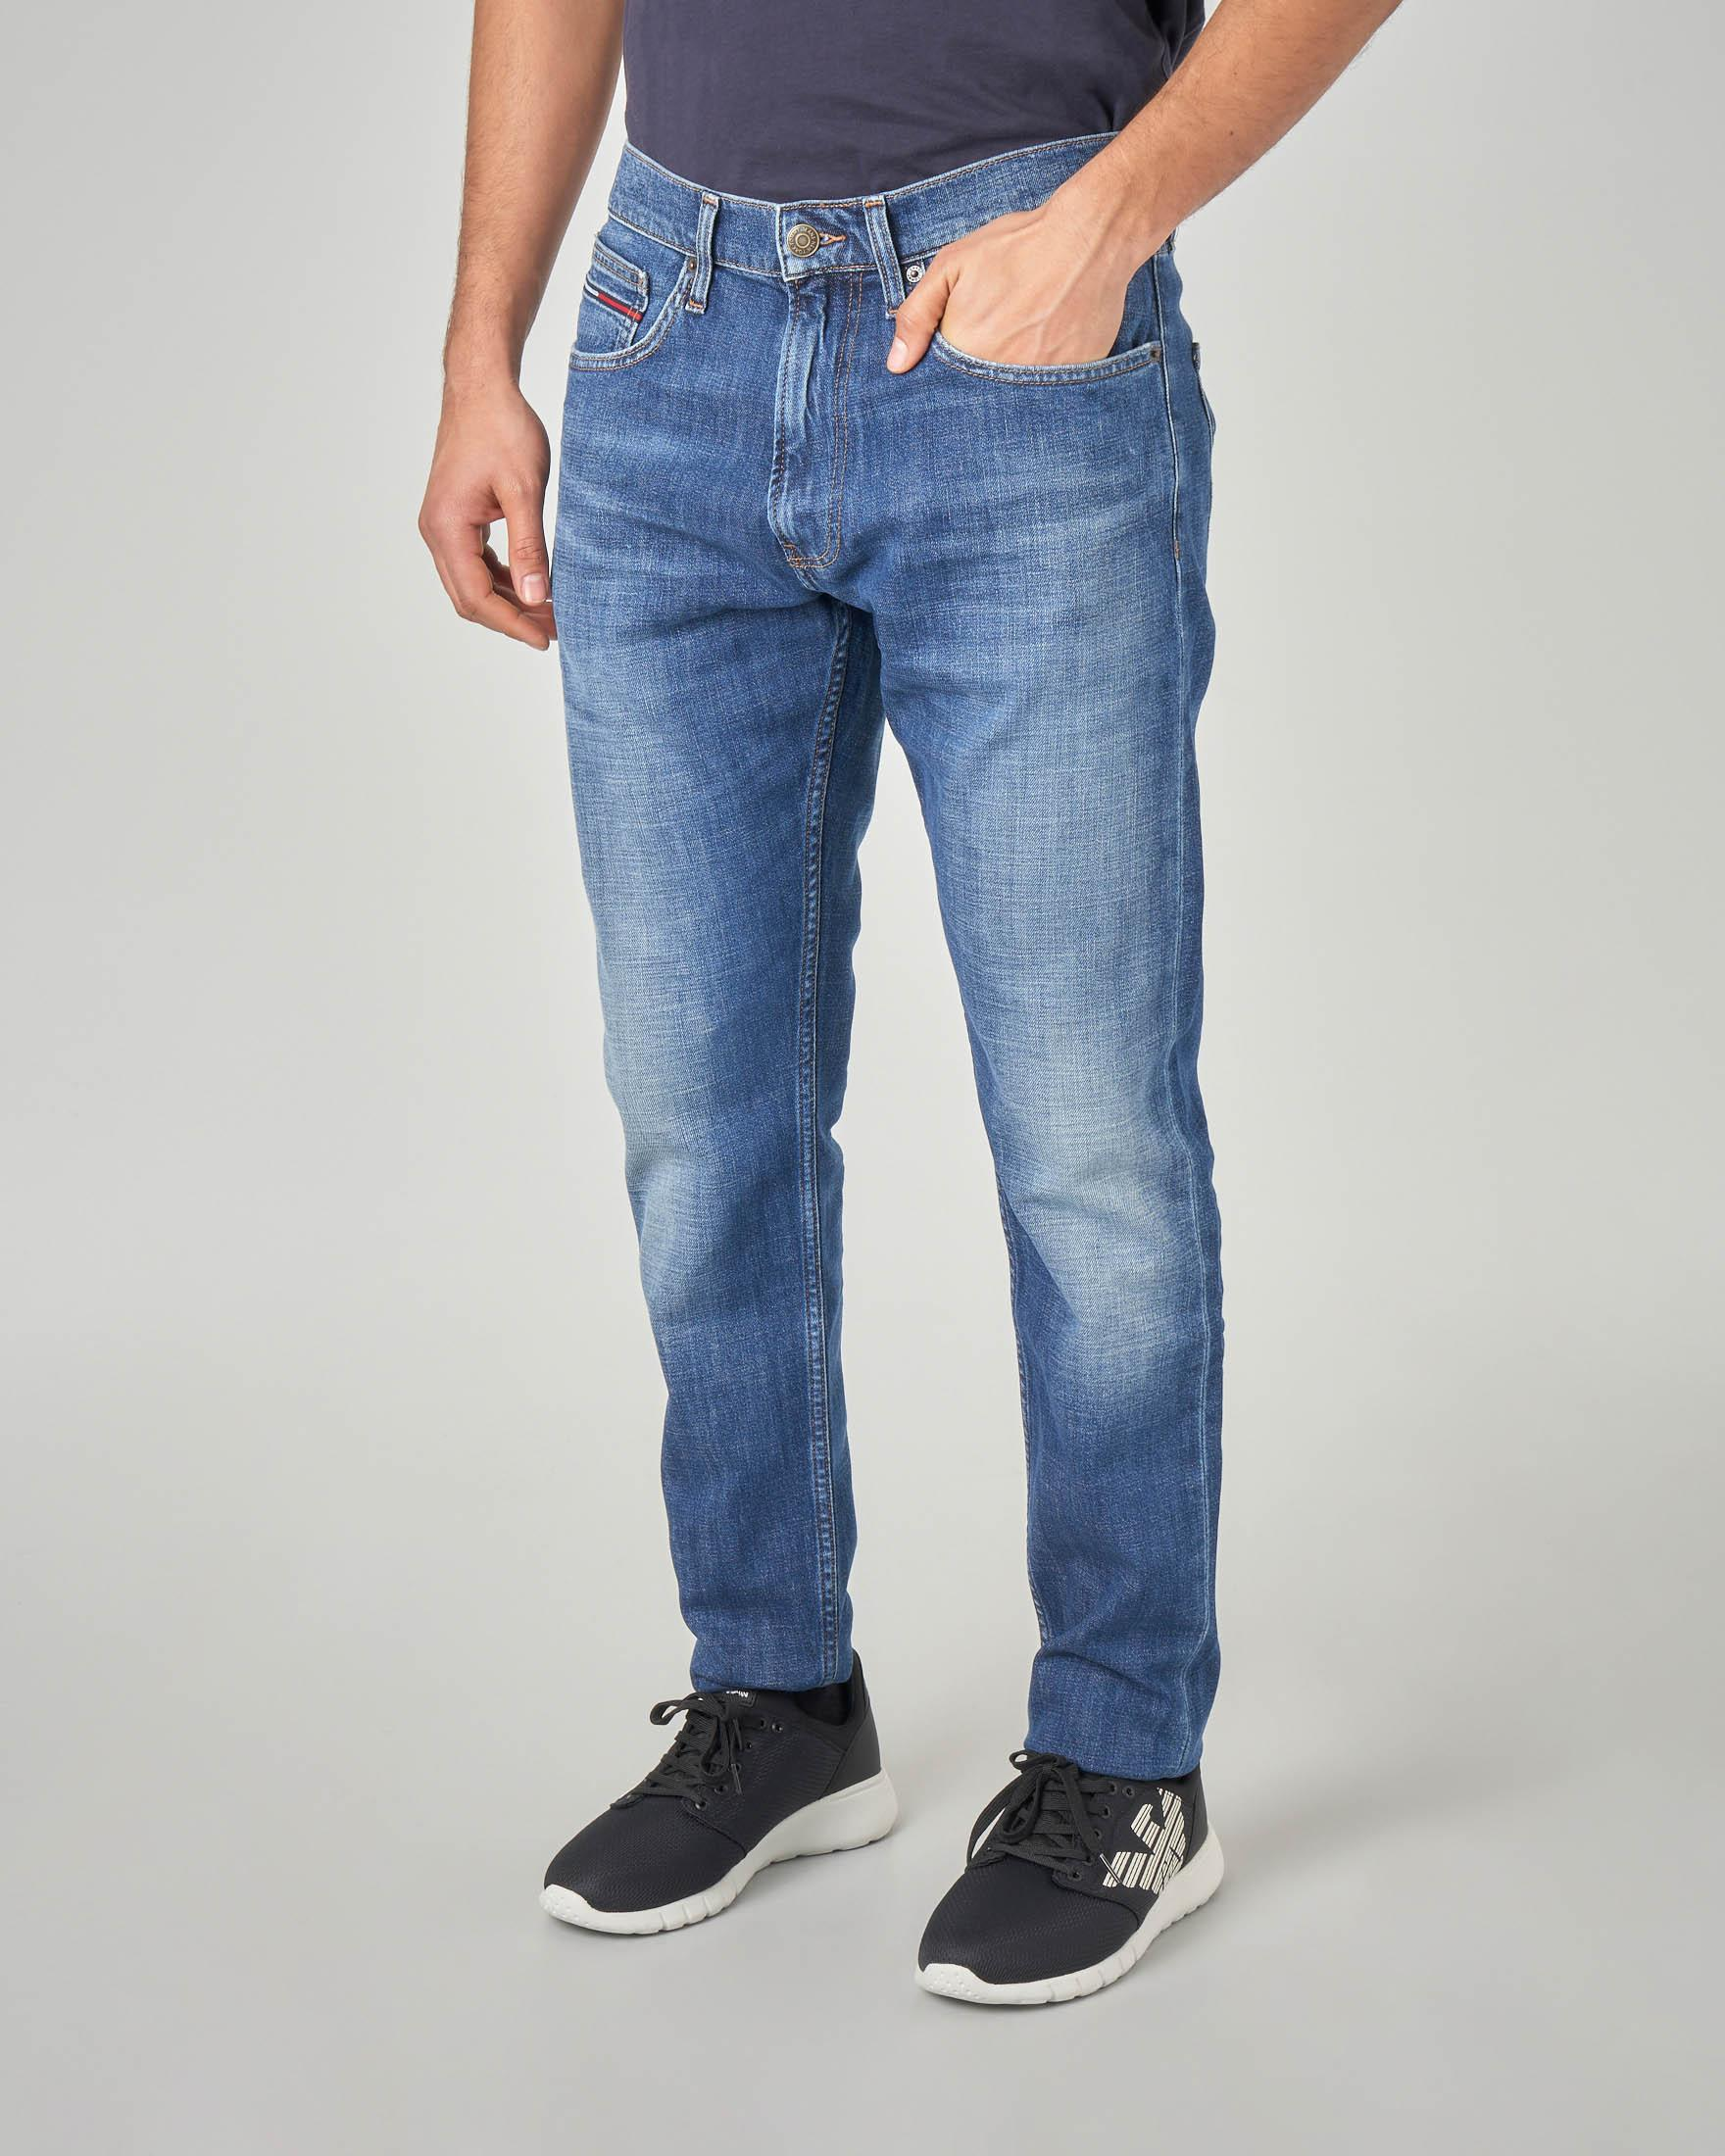 Jeans tapered lavaggio stone wash